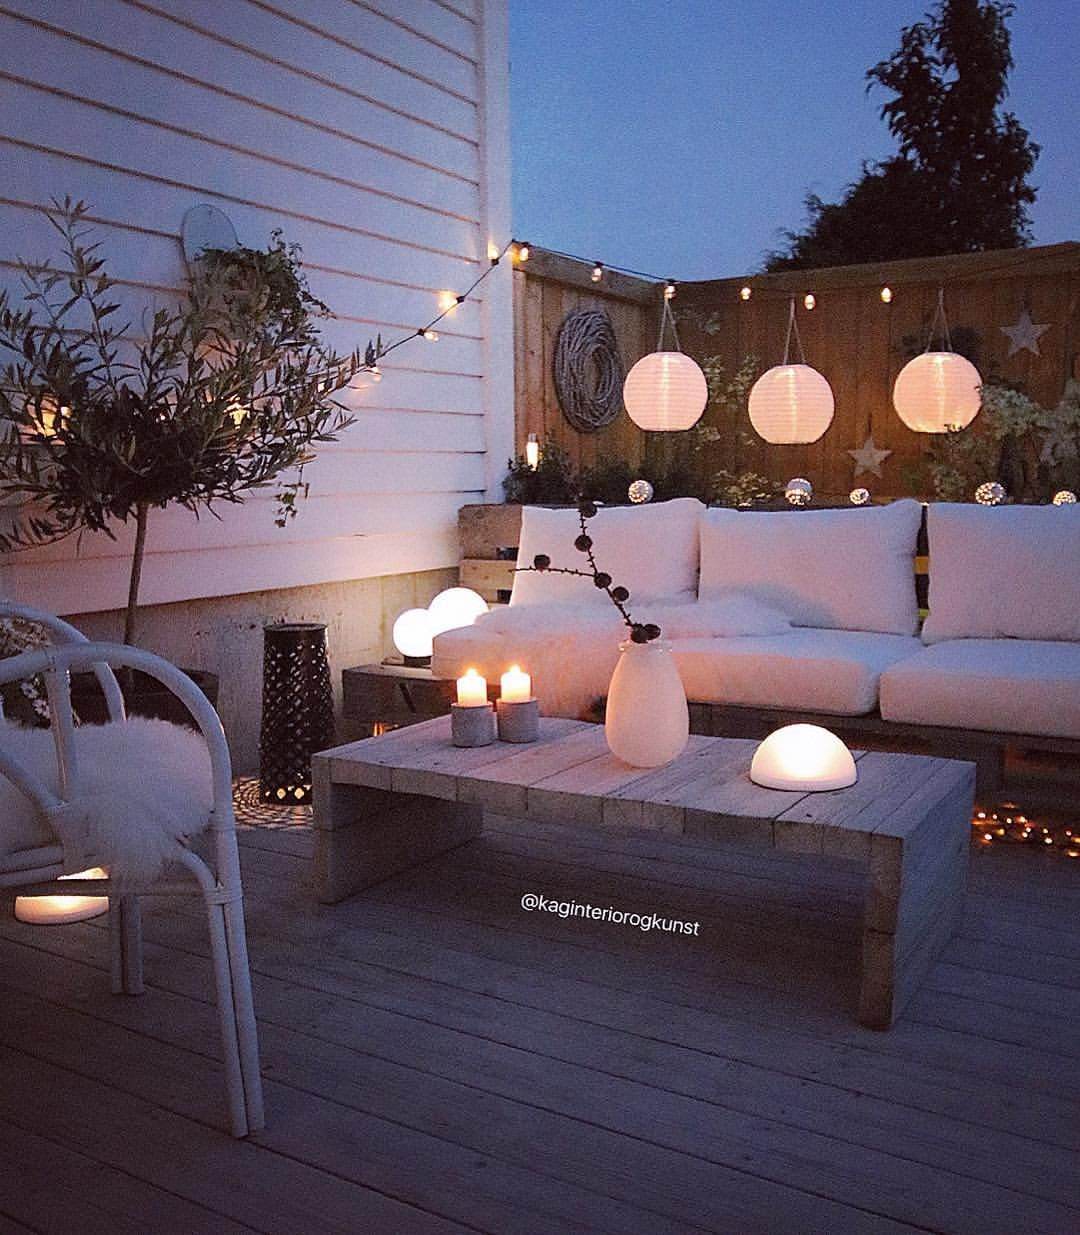 Deck lighting ideas  outdoor can turn an average patio into something remarkable while providing safety at night and inviting also pin by chandni baid on osm decor pinterest backyard rh